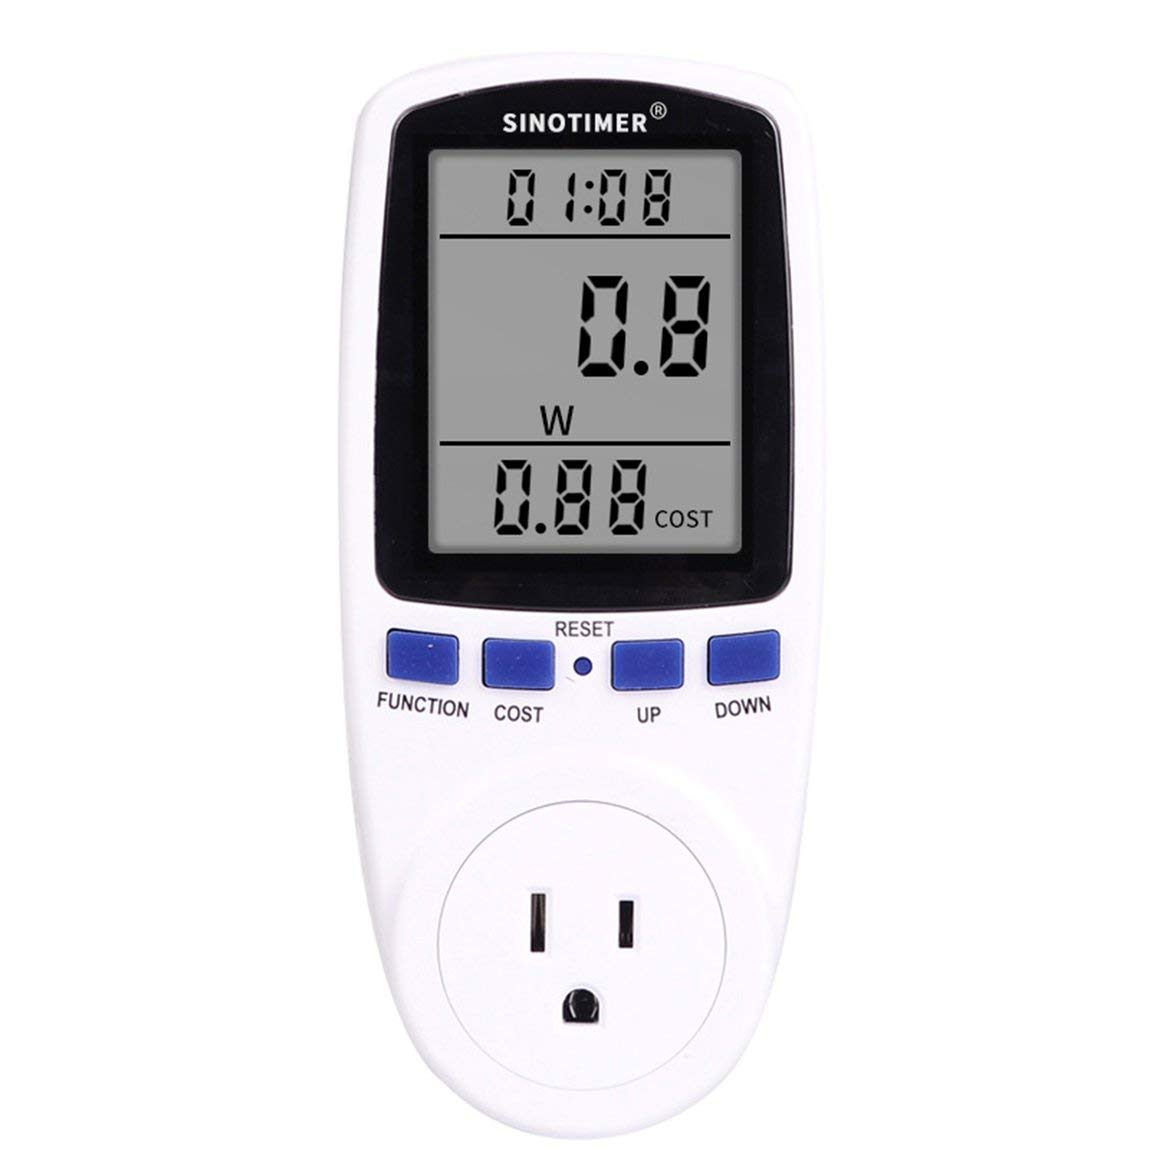 Power Meter Plug, Power Consumption Monitor Electricity Usage Monitor Analyzer Home Energy Consumption Analyzer